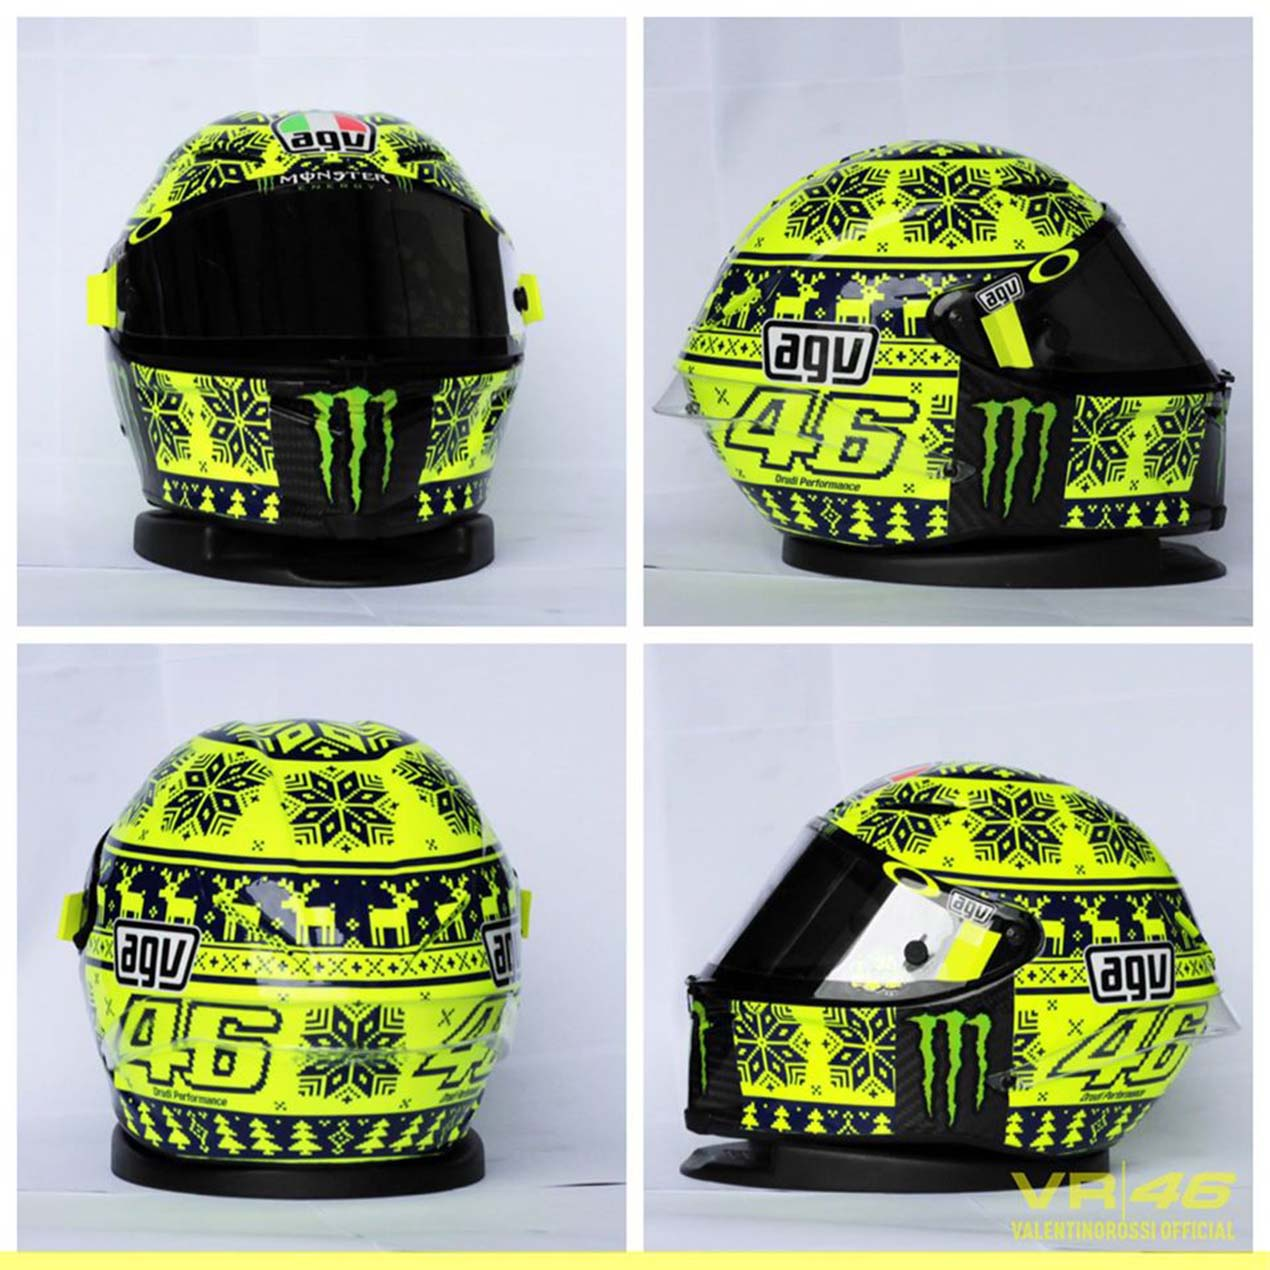 Photos Rossi S Quot Ugly Xmas Sweater Quot Helmet At Sepang